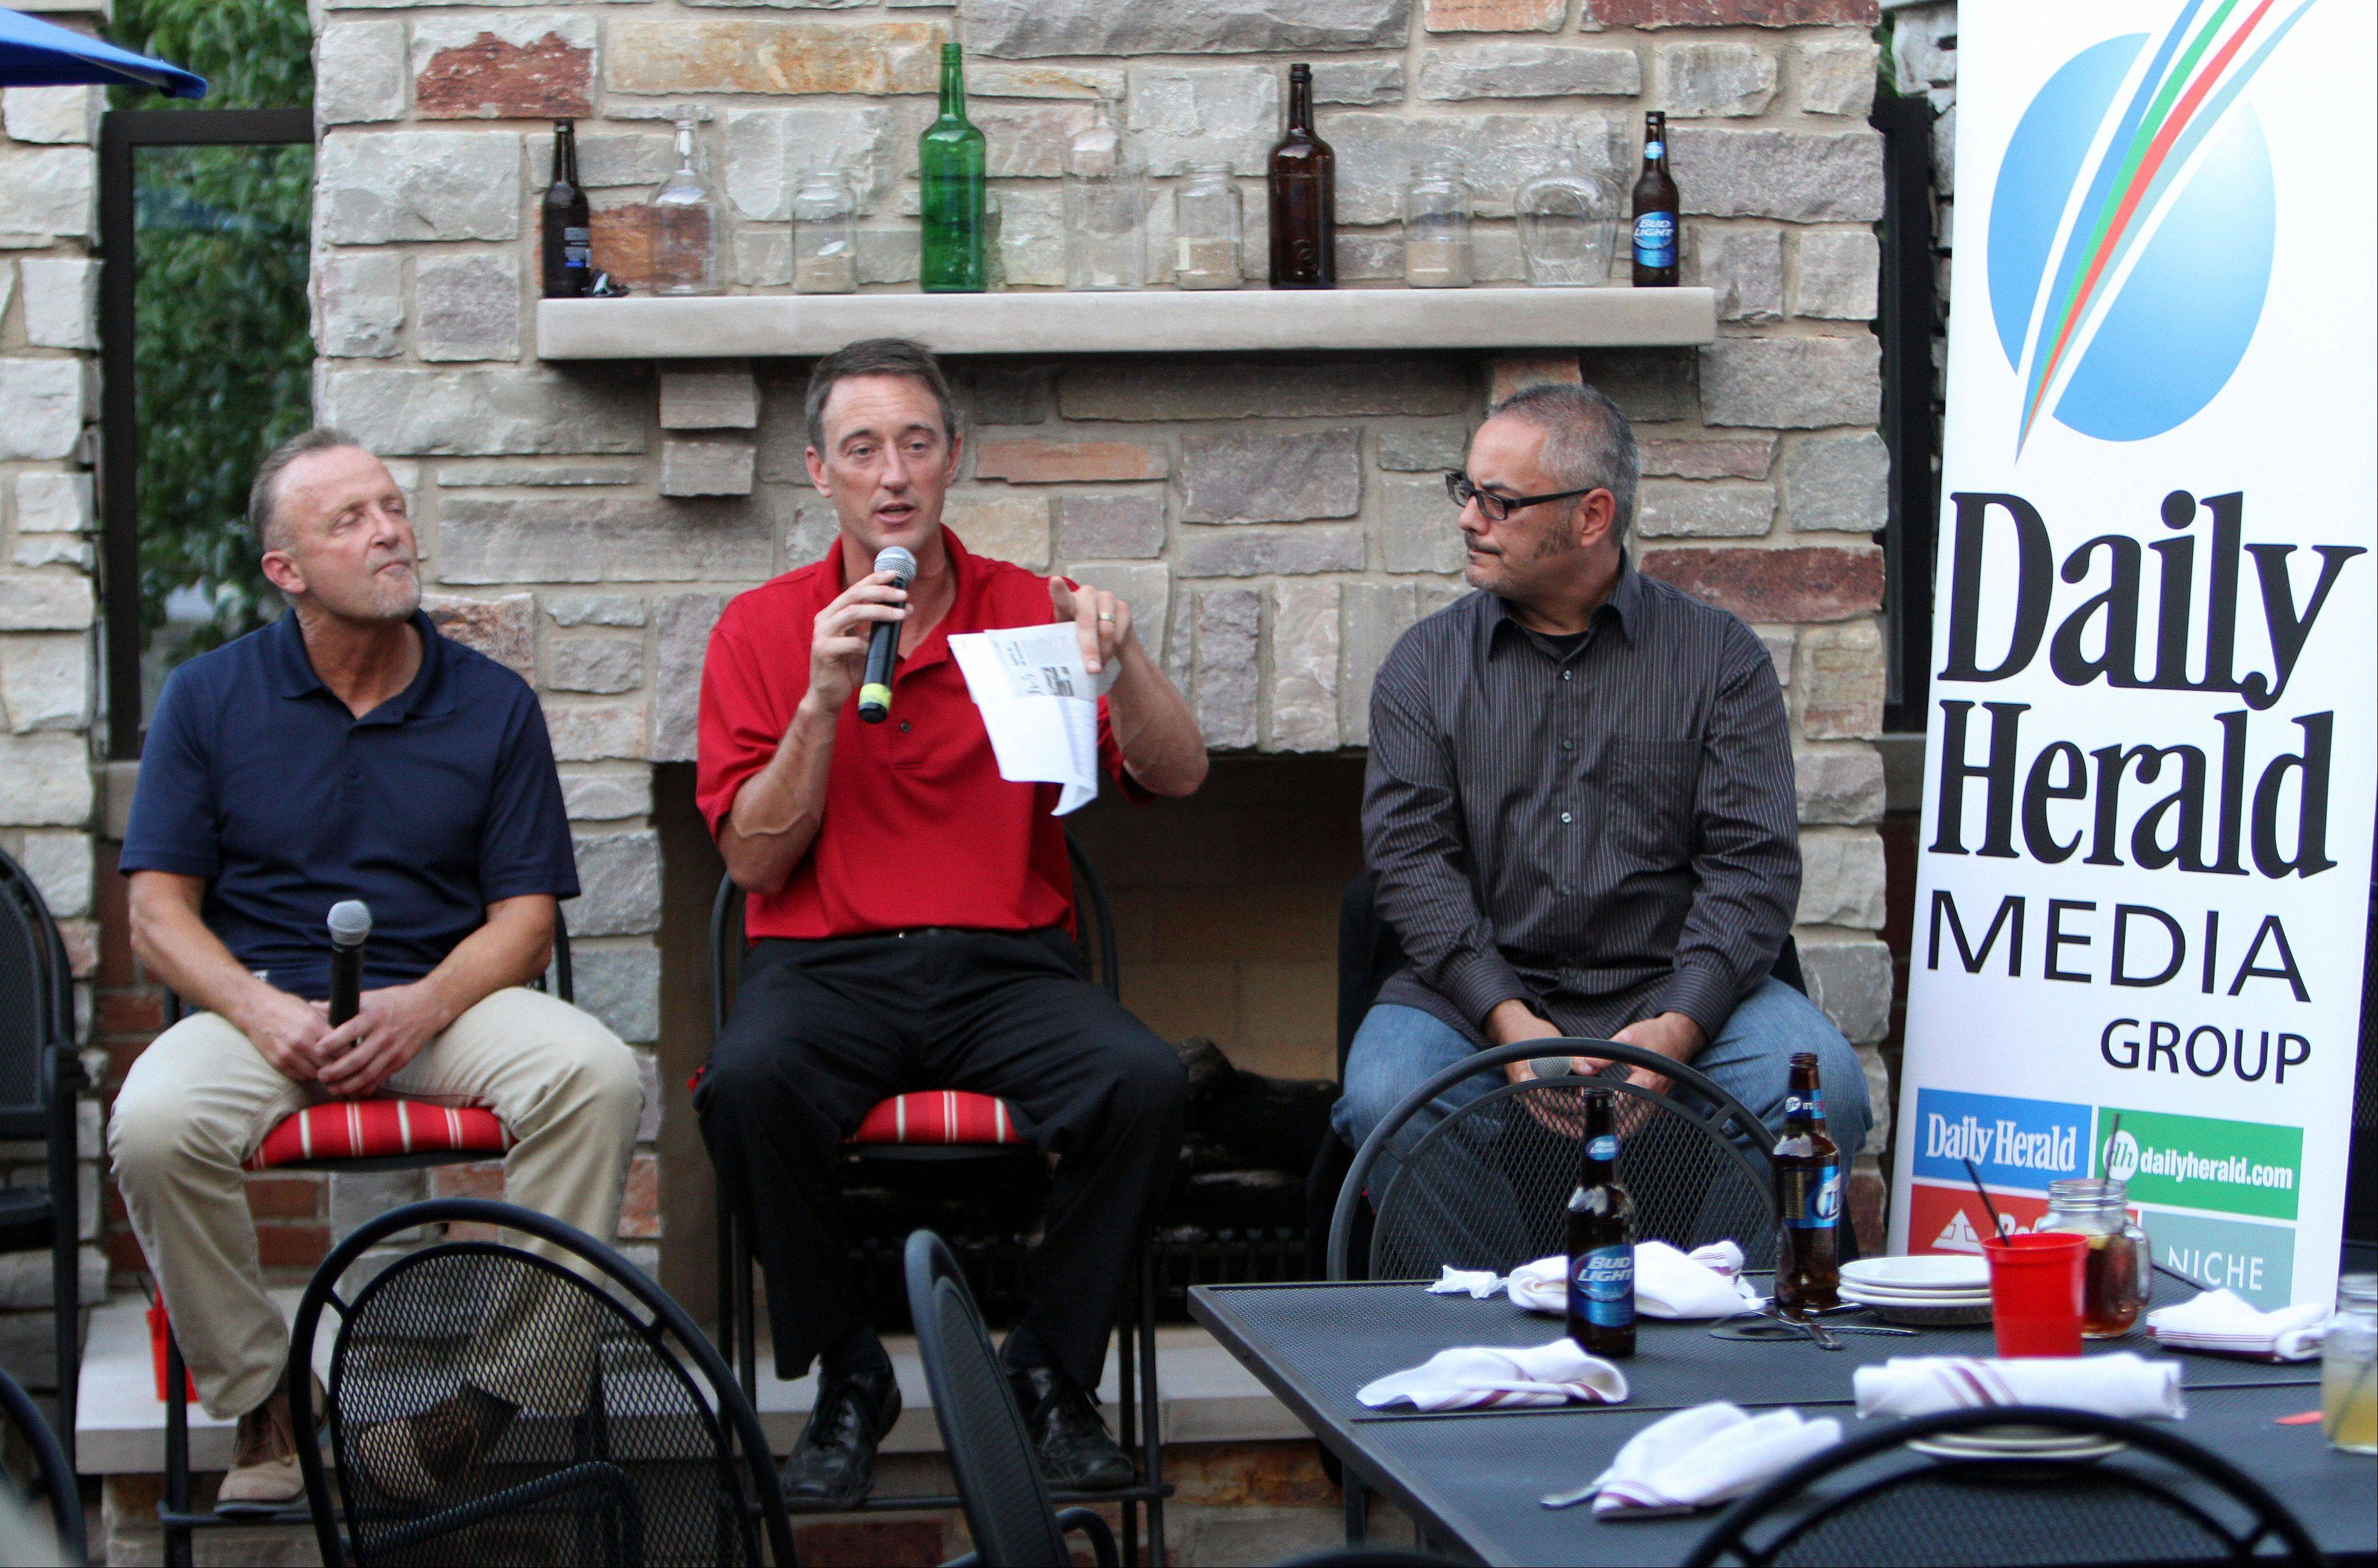 From left, Bears beat writer Bob LeGere, fantasy football columnist John Dietz, and and sports writer Joe Aguilar participate in a Daily Herald-hosted Fantasy Football preview event for about 100 subscribers Monday at Rack House Kitchen and Tavern in Arlington Heights.